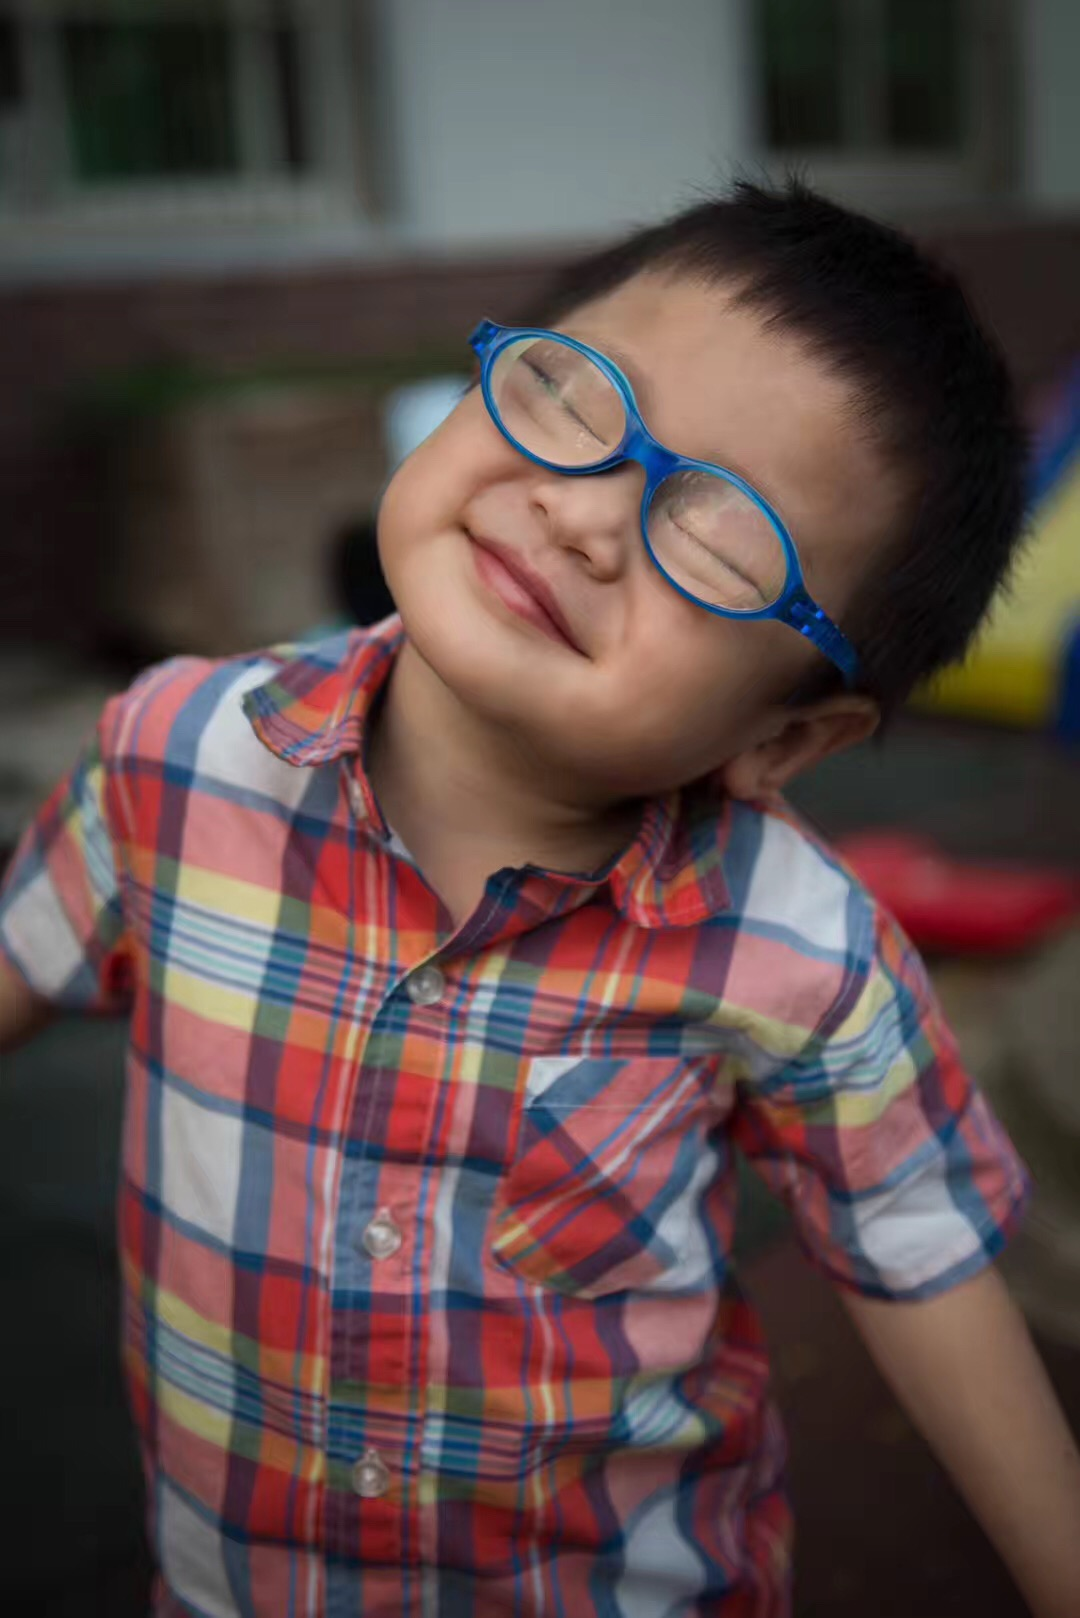 Zhao YB   Medical Condition: Cataracts, Autism